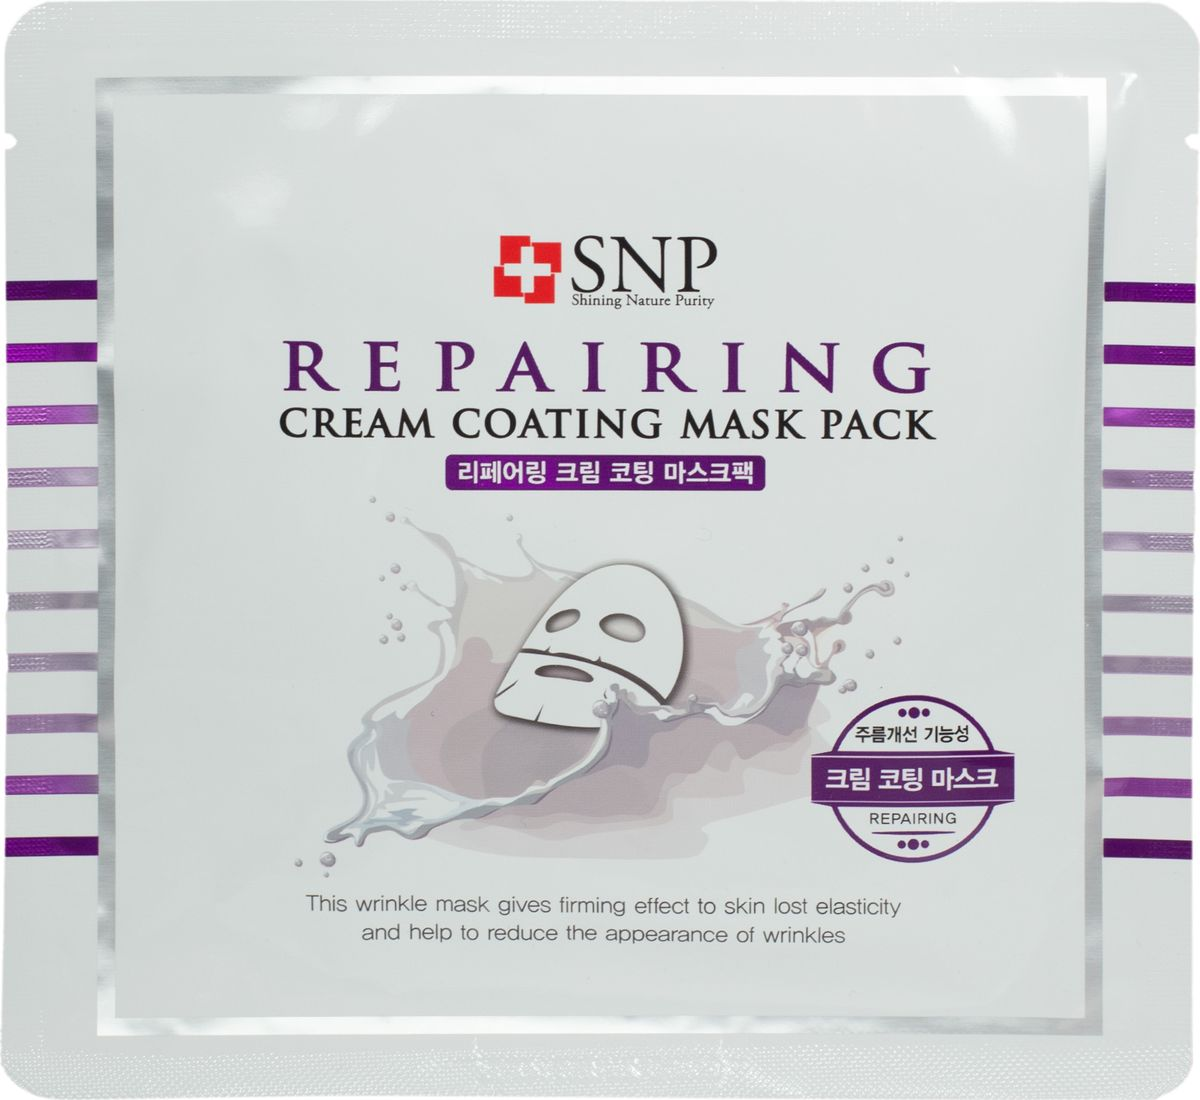 SNP Repairing Cream Coating Mask Pack Маска для лица омолаживающая snp ice bear cica mask